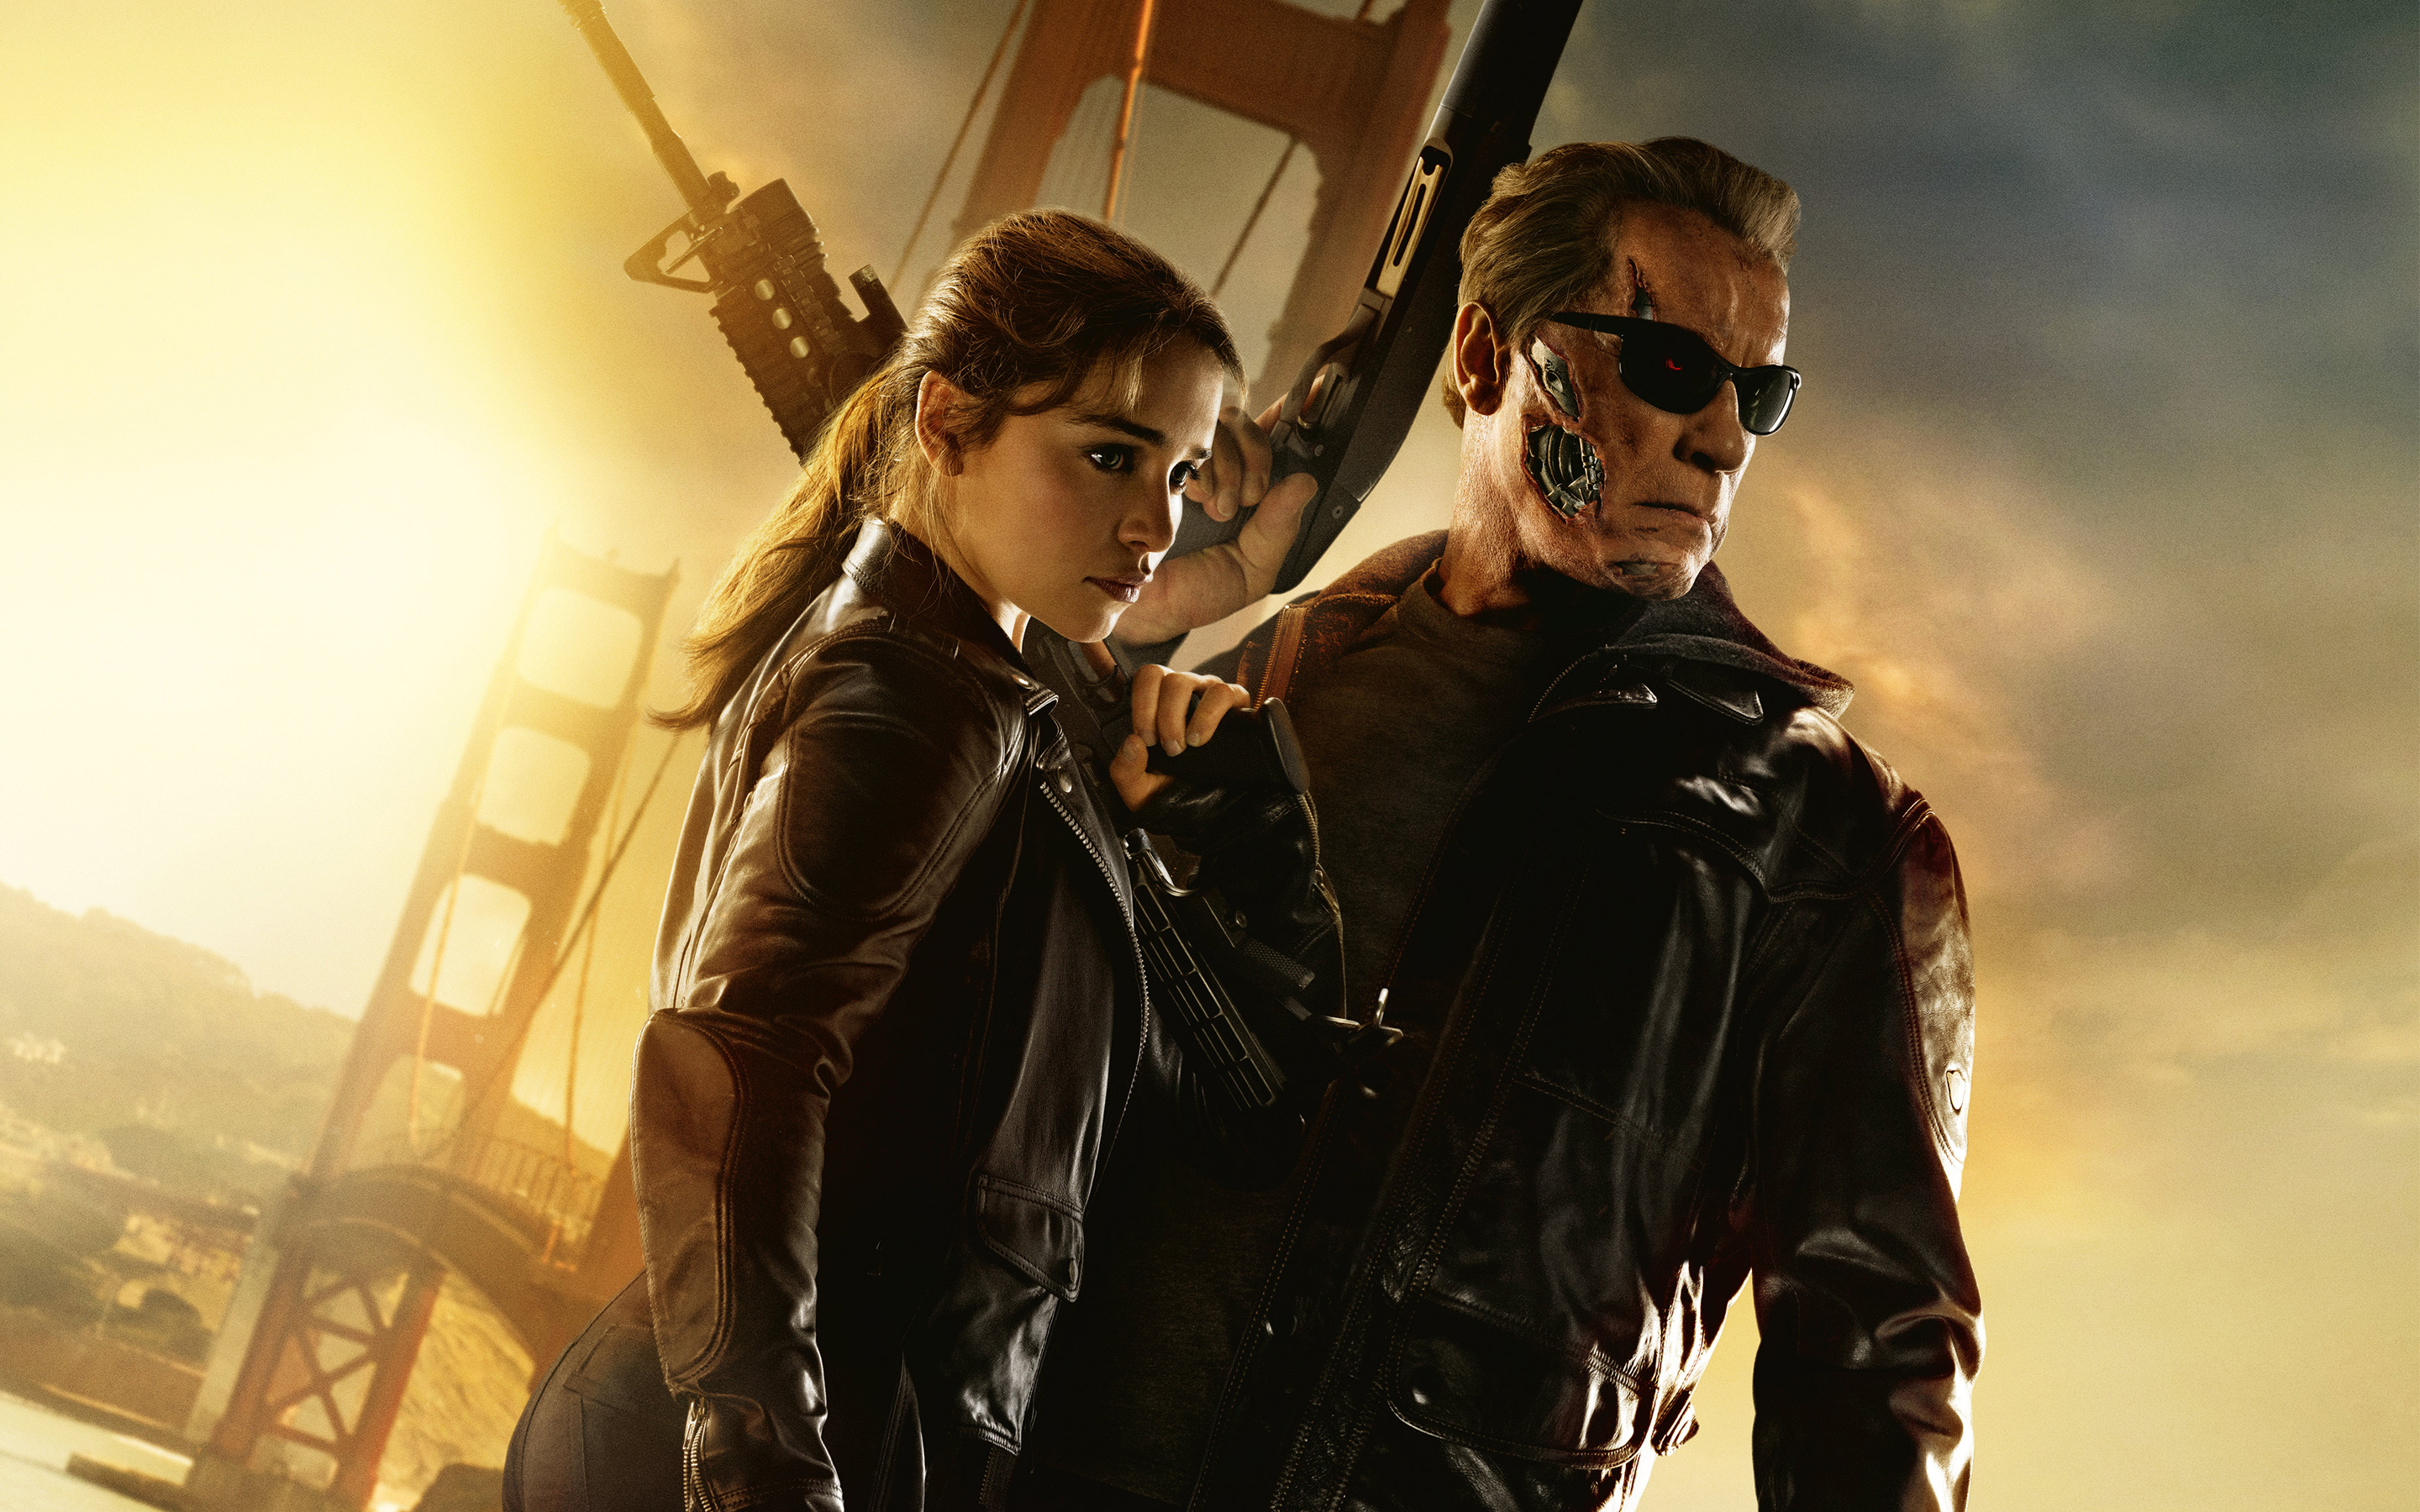 35 Terminator Genisys HD Wallpapers Background Images 2880x1800